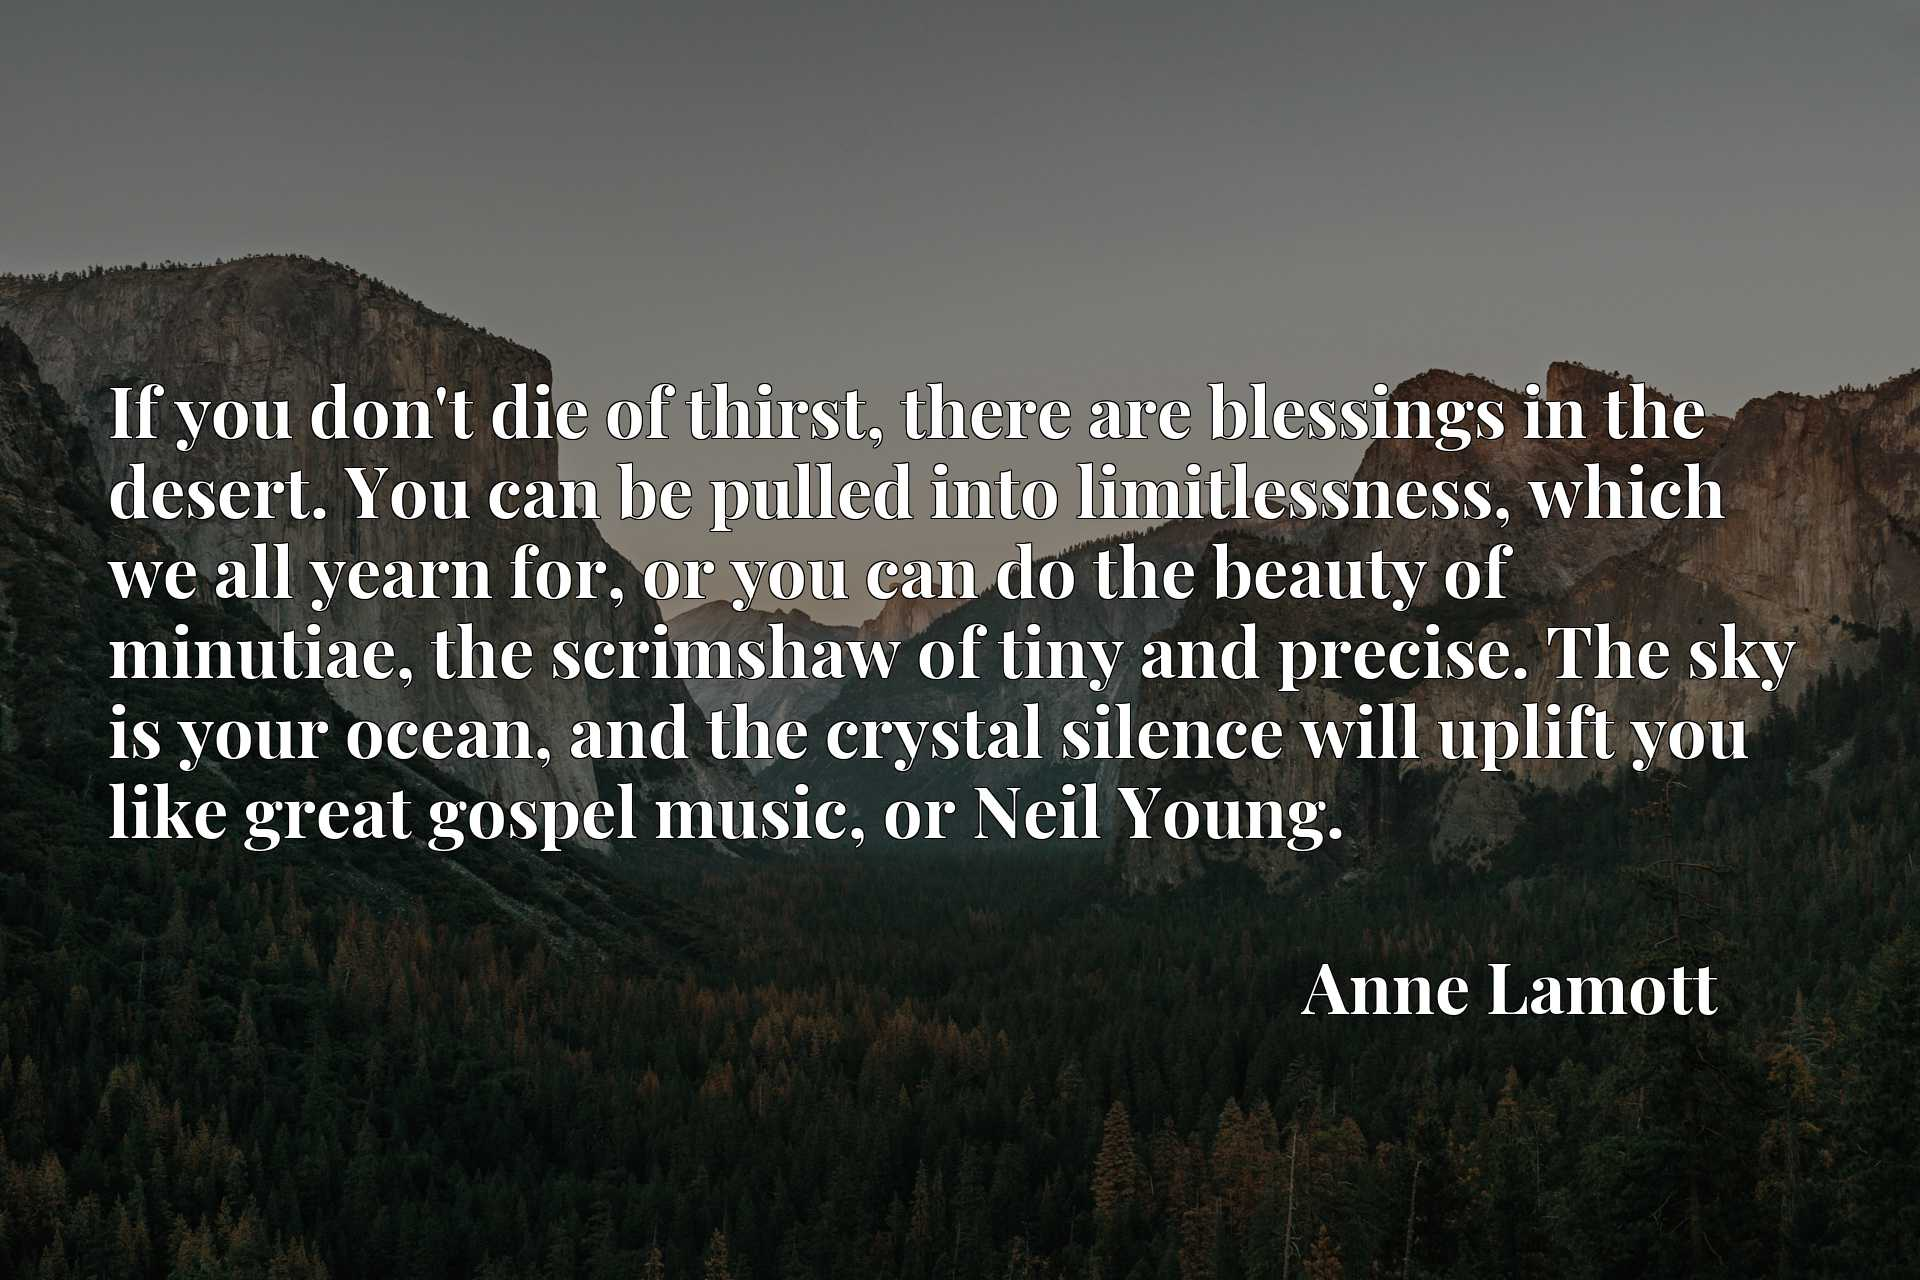 If you don't die of thirst, there are blessings in the desert. You can be pulled into limitlessness, which we all yearn for, or you can do the beauty of minutiae, the scrimshaw of tiny and precise. The sky is your ocean, and the crystal silence will uplift you like great gospel music, or Neil Young.